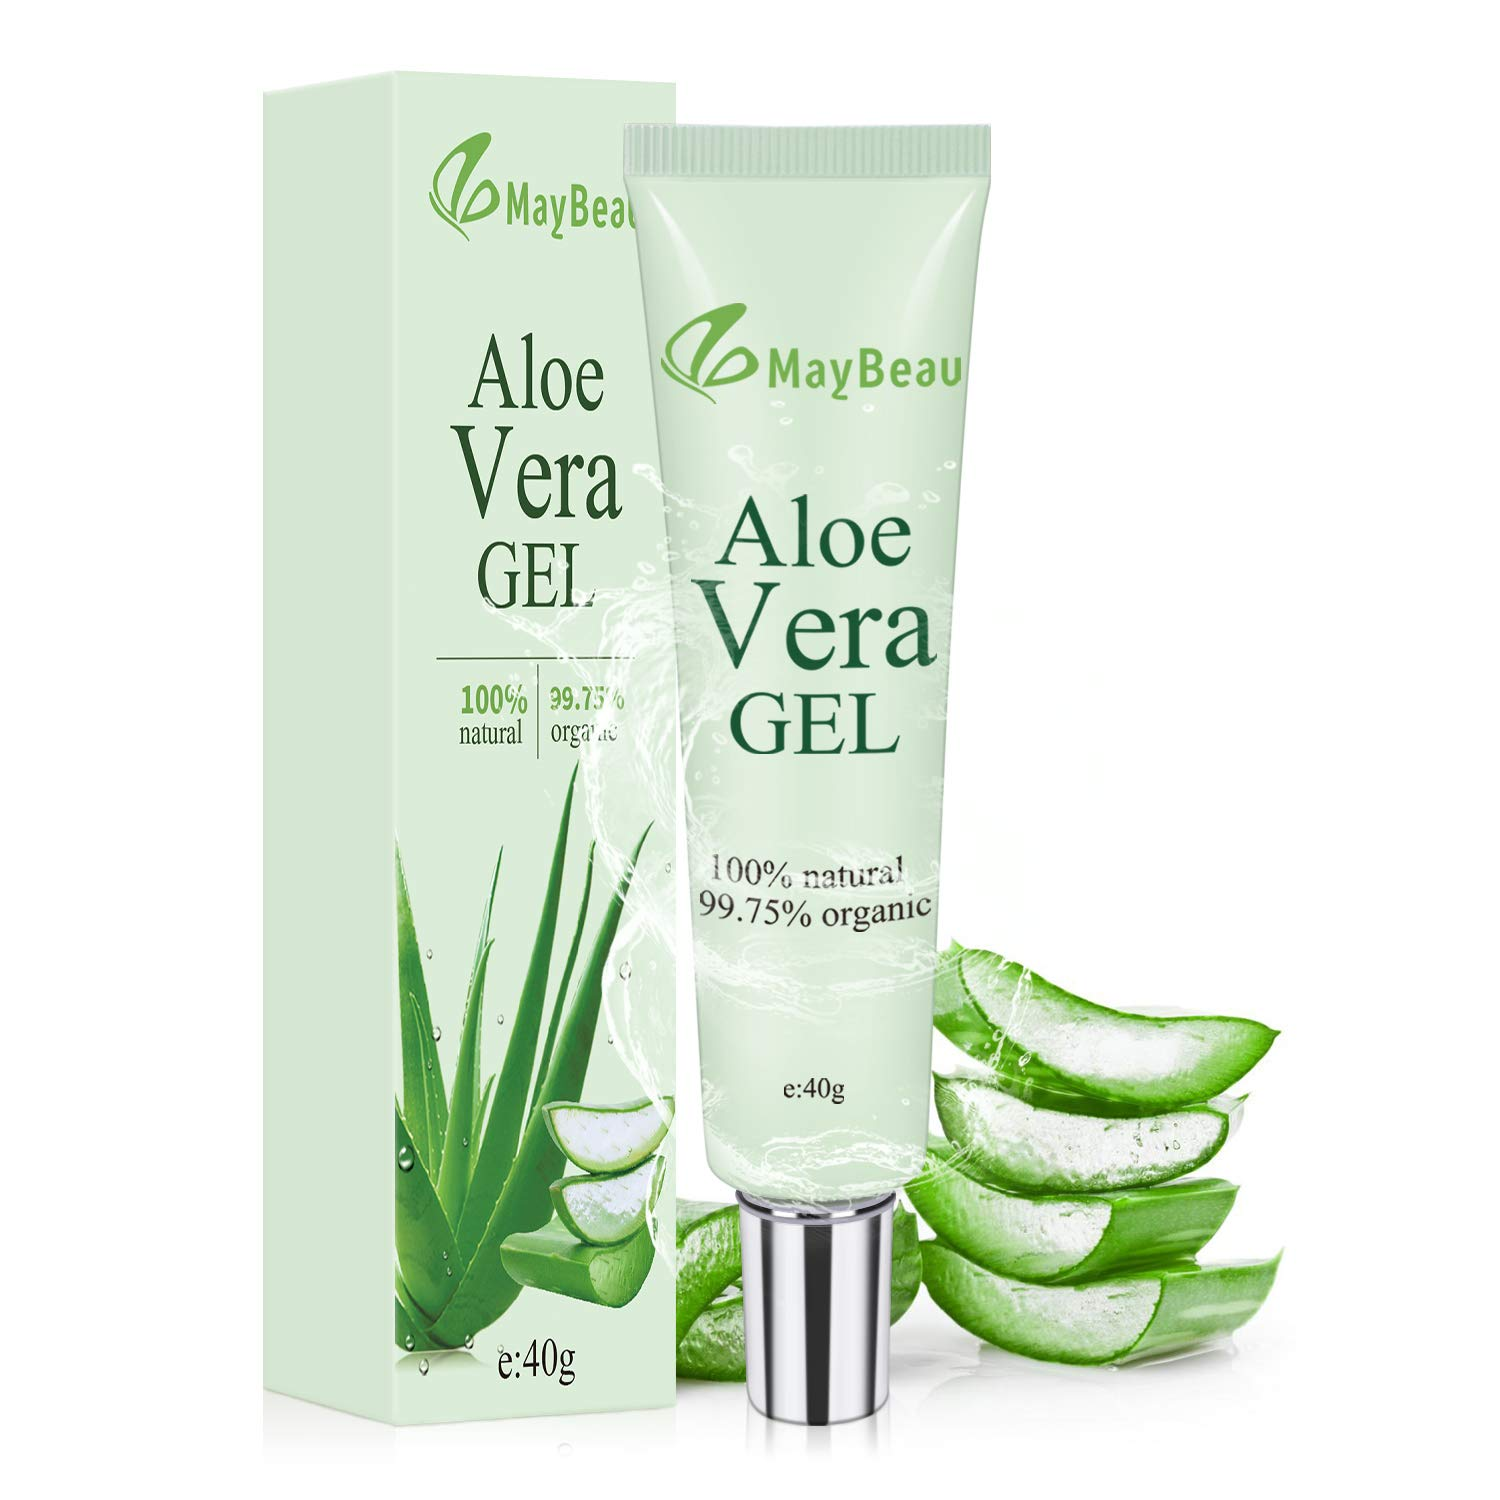 MayBeau Organic Aloe Vera Gel 1.4oz Acne Scar Treatment Portable Size Scar Cream for Face Moisturizing Sunburn Eczema Itching Burn BUYMYSIDE